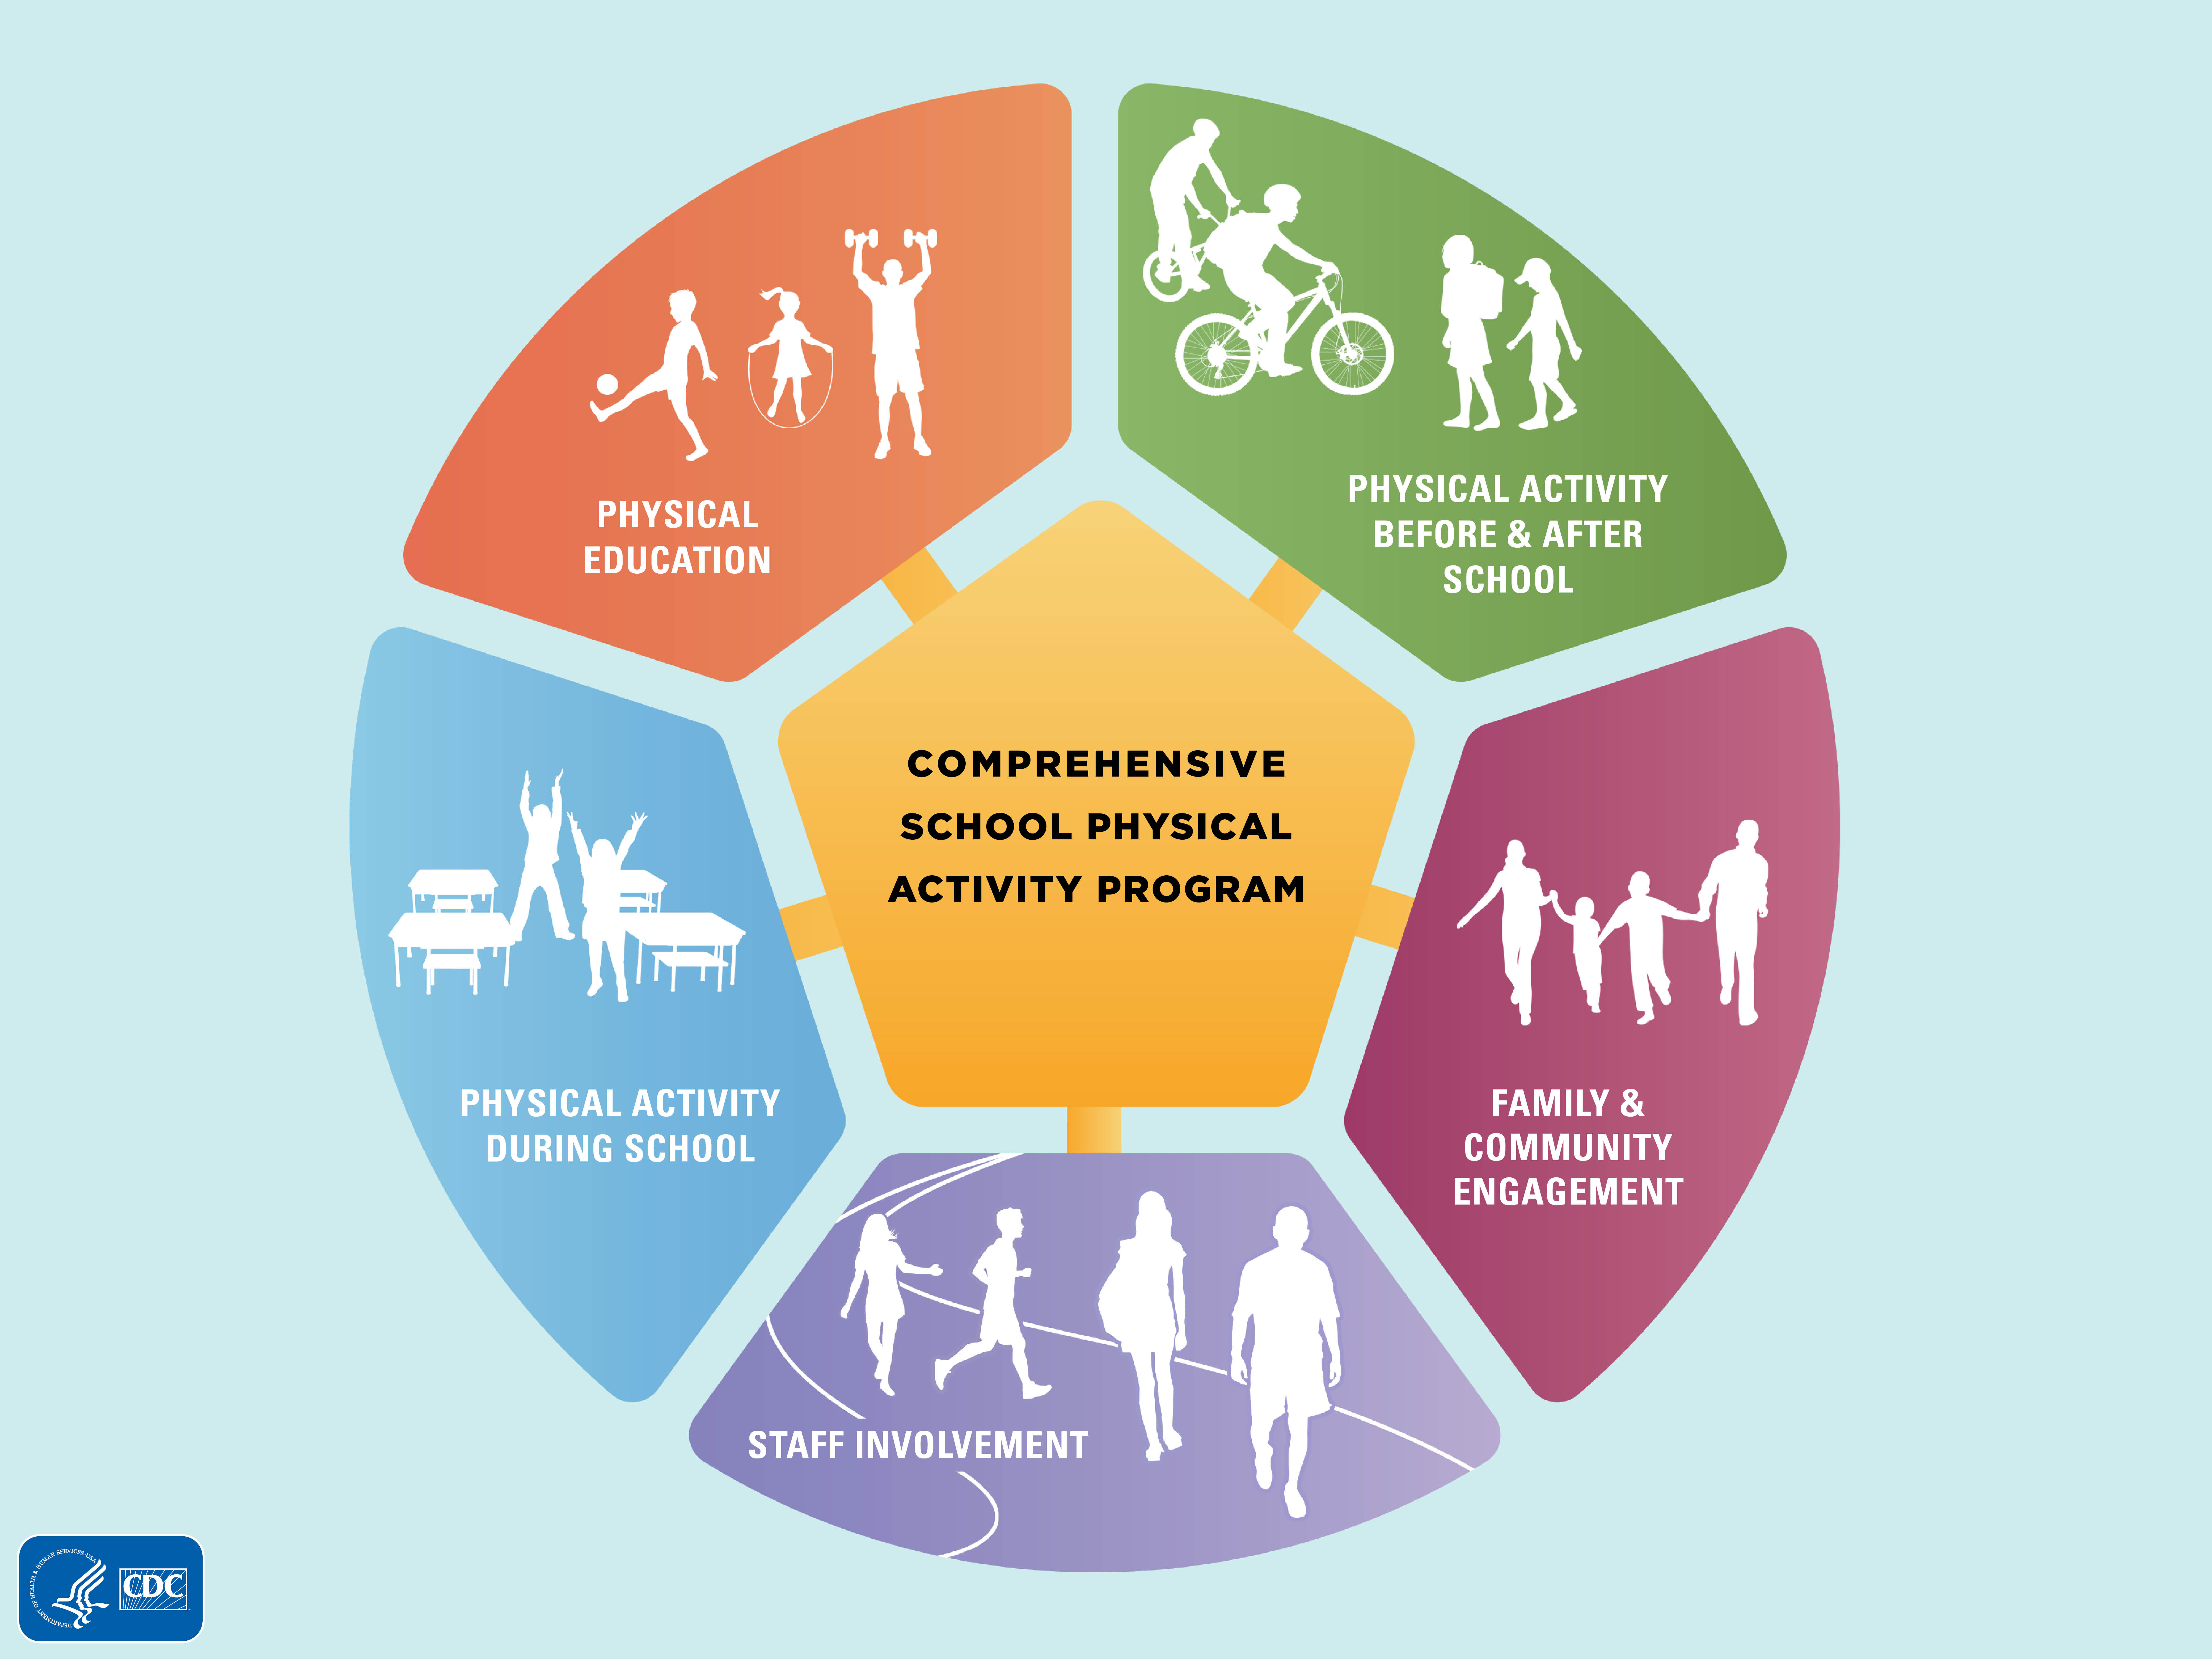 parents for healthy schools  healthy schools  cdc comprehensive school physical activity program model and physical activity  in schools infographic